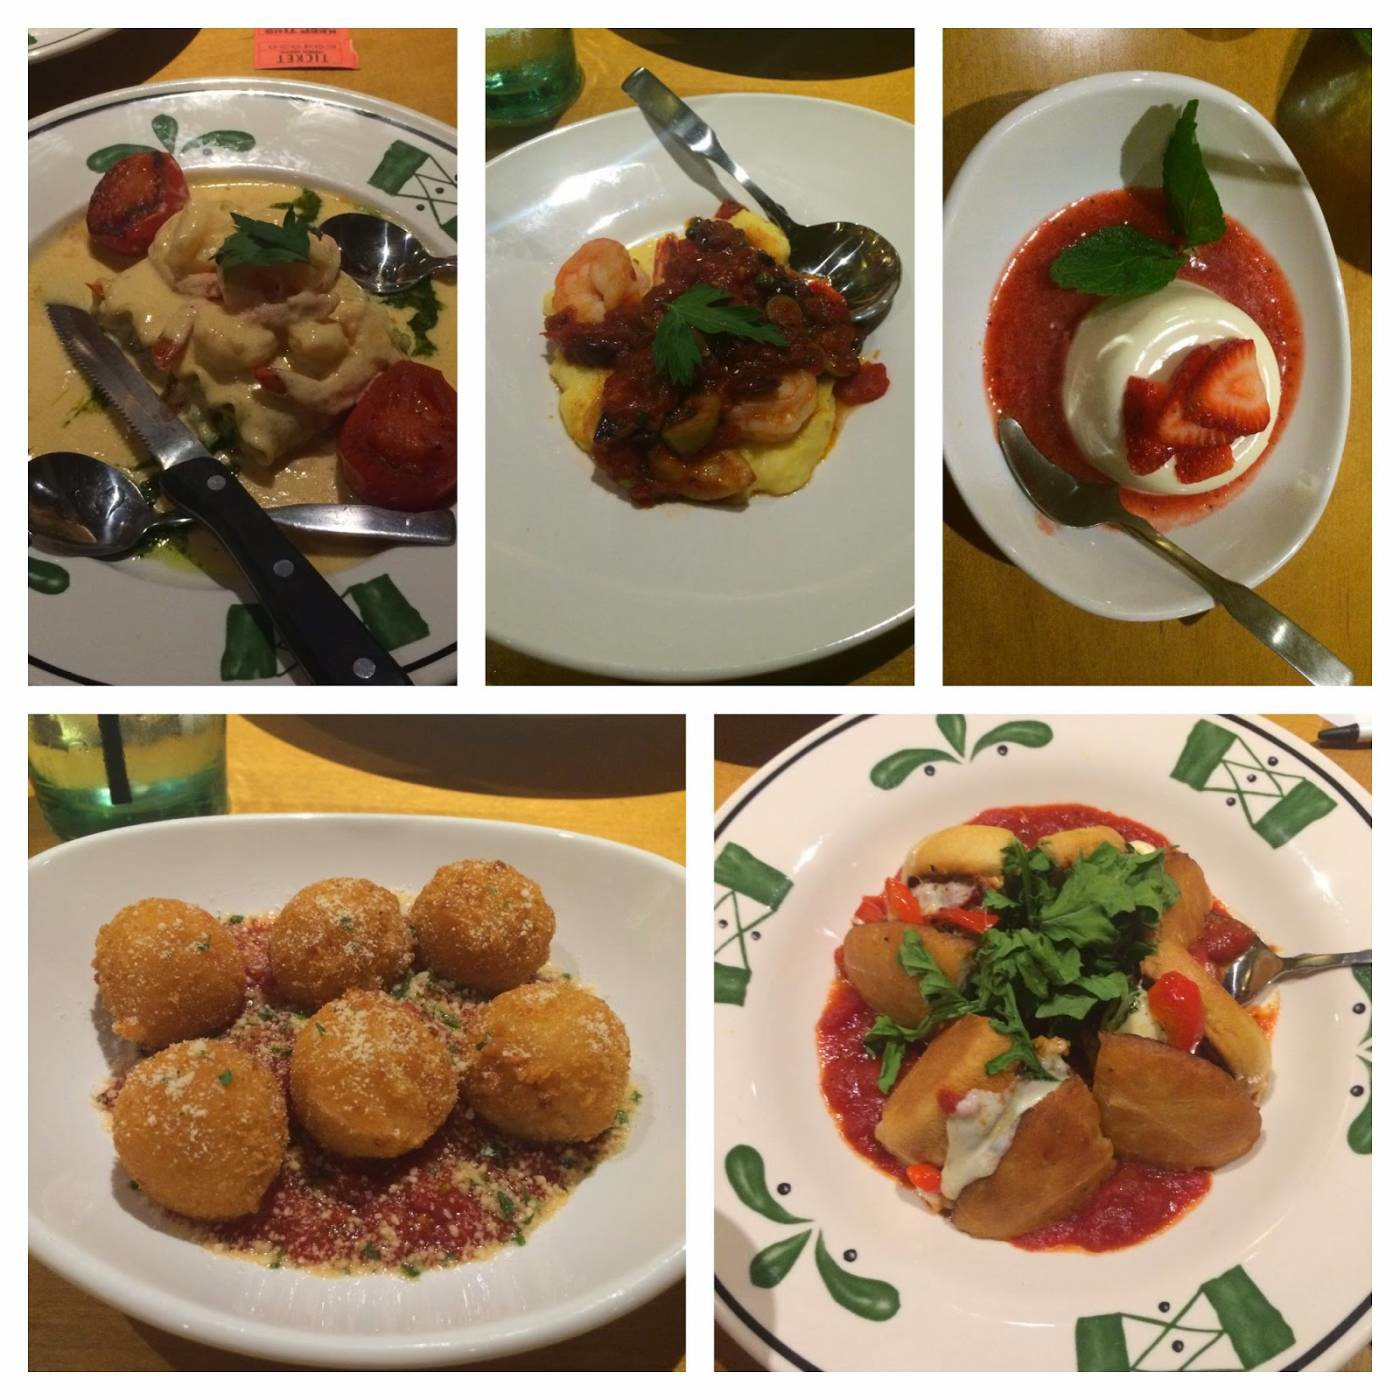 Olive garden new menu items small towns city lights - Olive garden crispy risotto bites ...